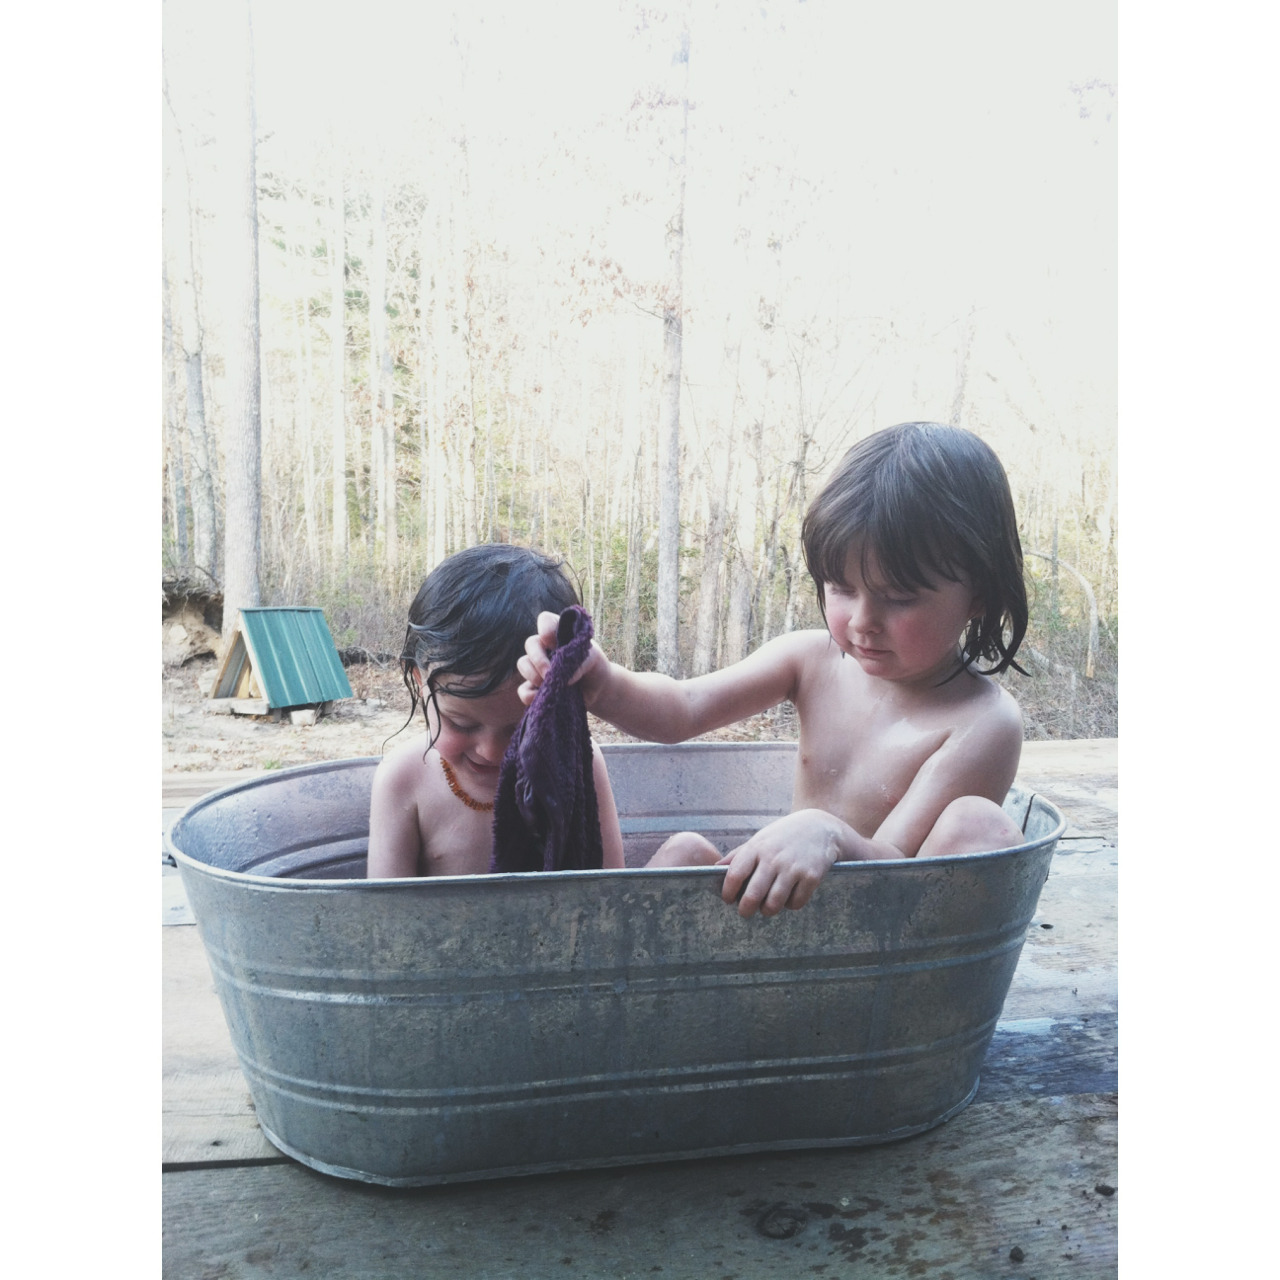 Sunshine and outdoor washtub baths 🌞🛁